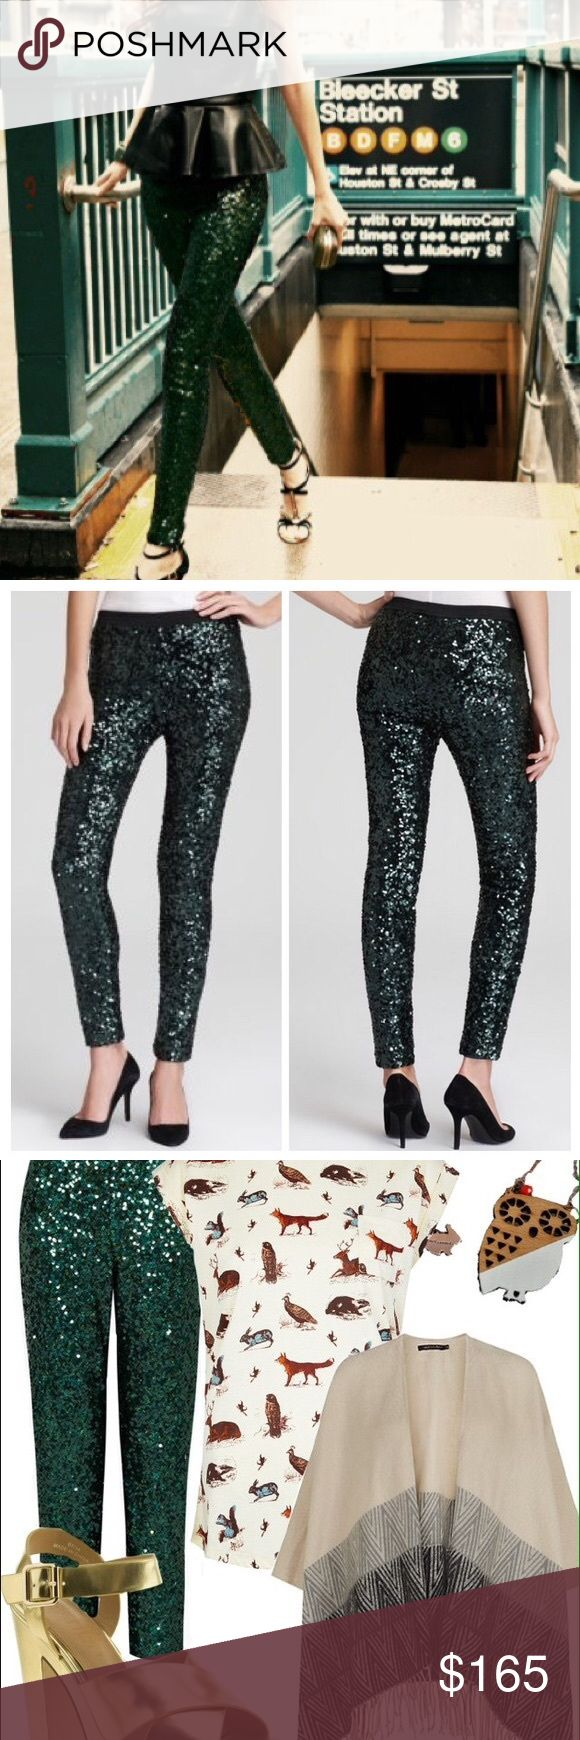 French connection ozlem sequin green pants AMAZING! These are the definition of hot pants! Worn once for a shoot-in like new condition. Dark green. Size medium. PRODUCT DETAILS: A pair of dazzling, showstopping, sequined French Connection skinny pants are a recipe for glam gams, with a generous helping of sparkle and shine.  Polyester/spandex Dry clean Imported Elasticized waist, allover sequins, fully lined French Connection Pants